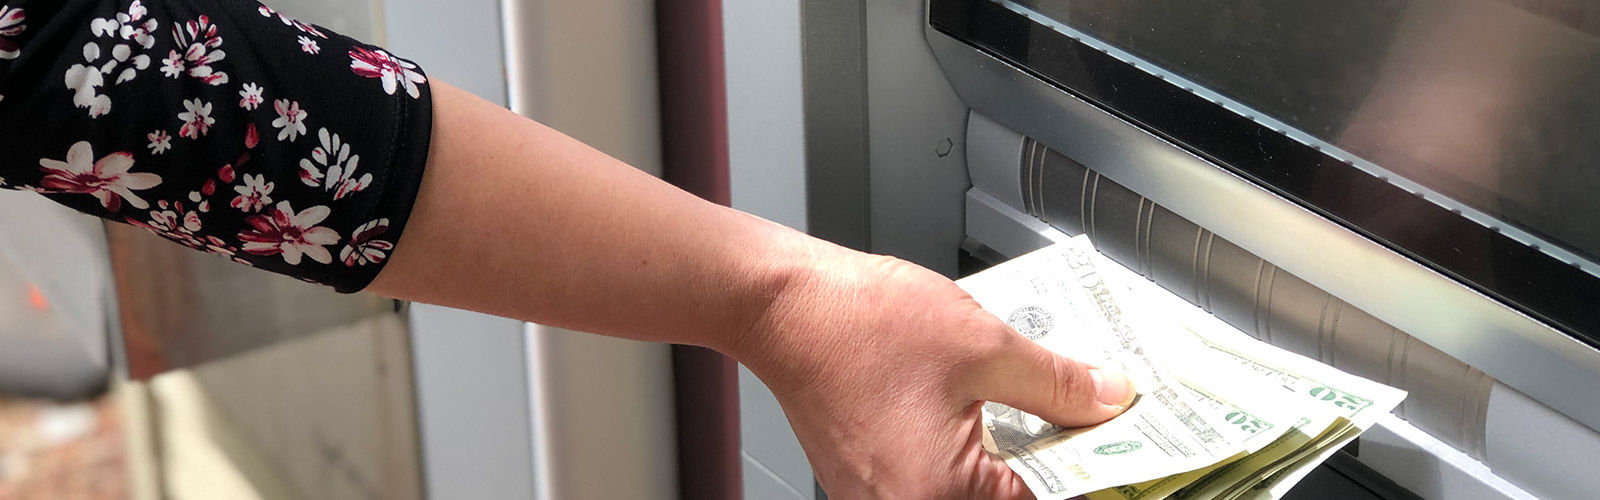 Woman putting money into ATM